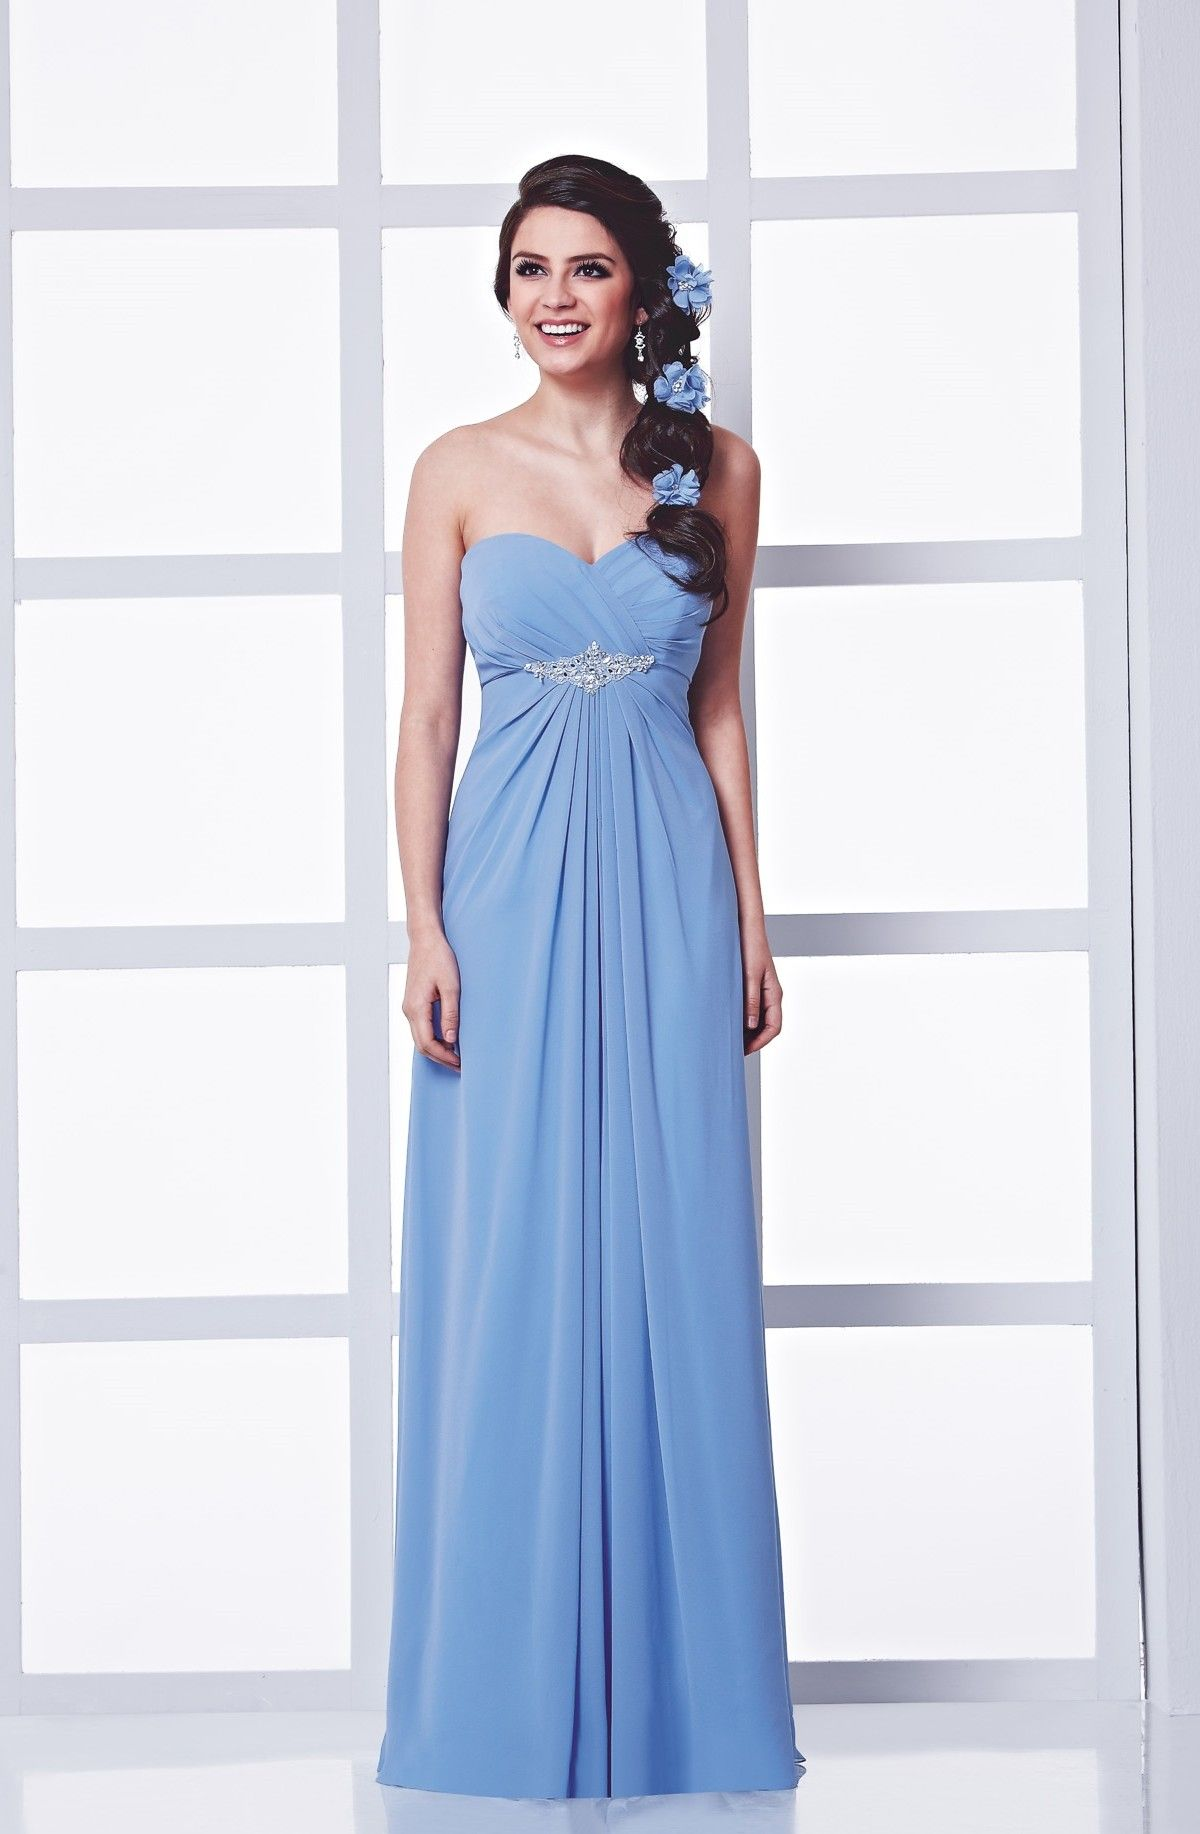 Dab11302 dzage bridesmaid collection veromia our bridesmaids dab11302 dzage bridesmaid collection veromia ombrellifo Choice Image